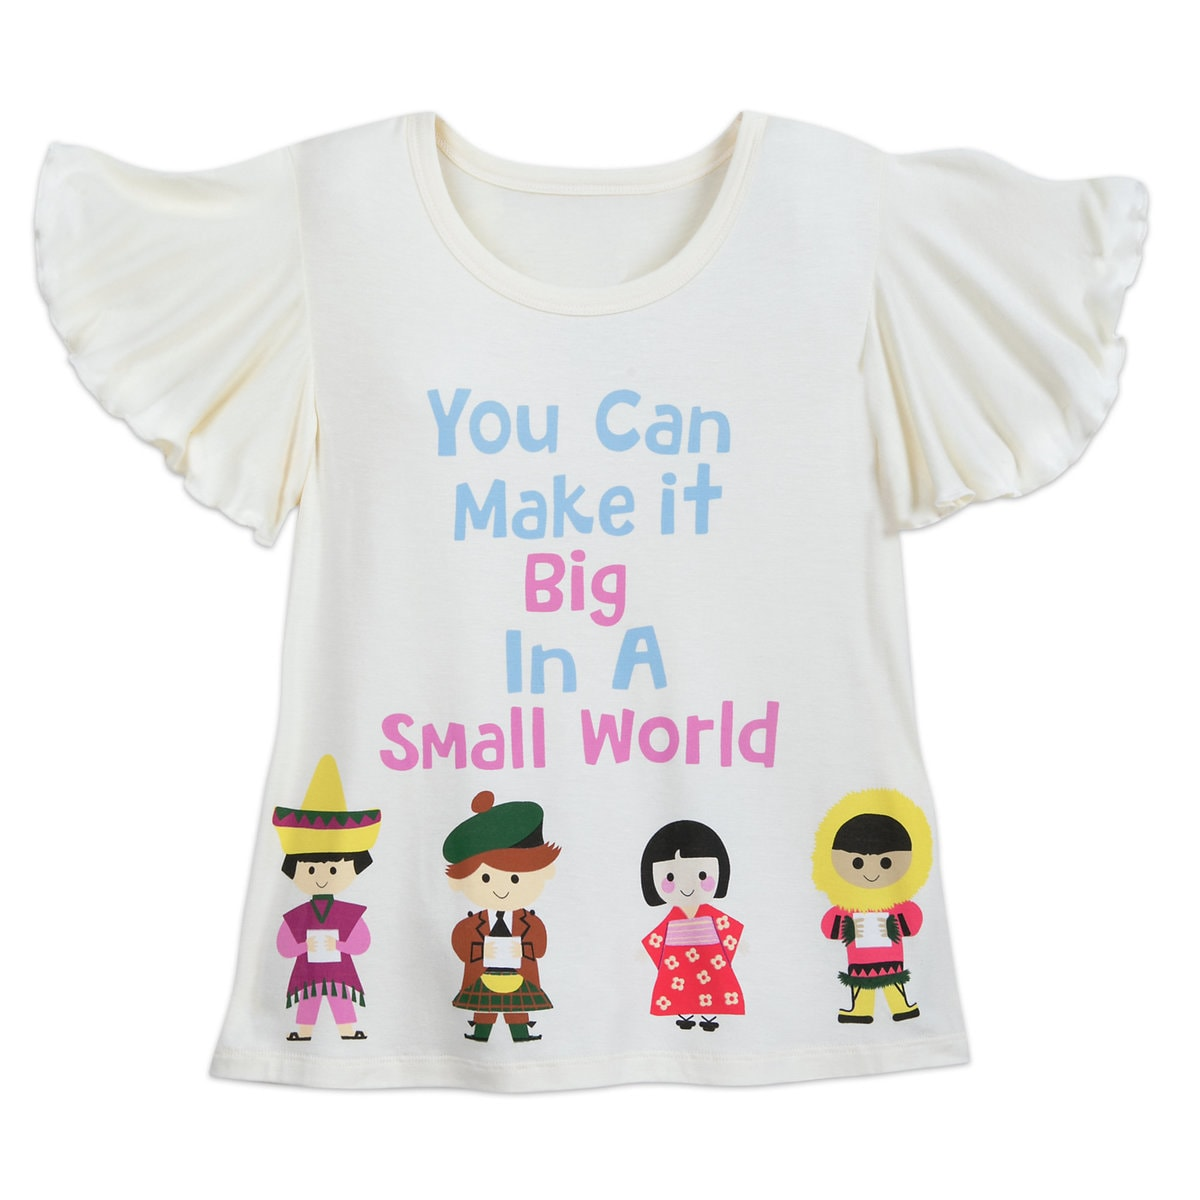 c65de409 Product Image of Disney it's small world T-Shirt for Kids # 1